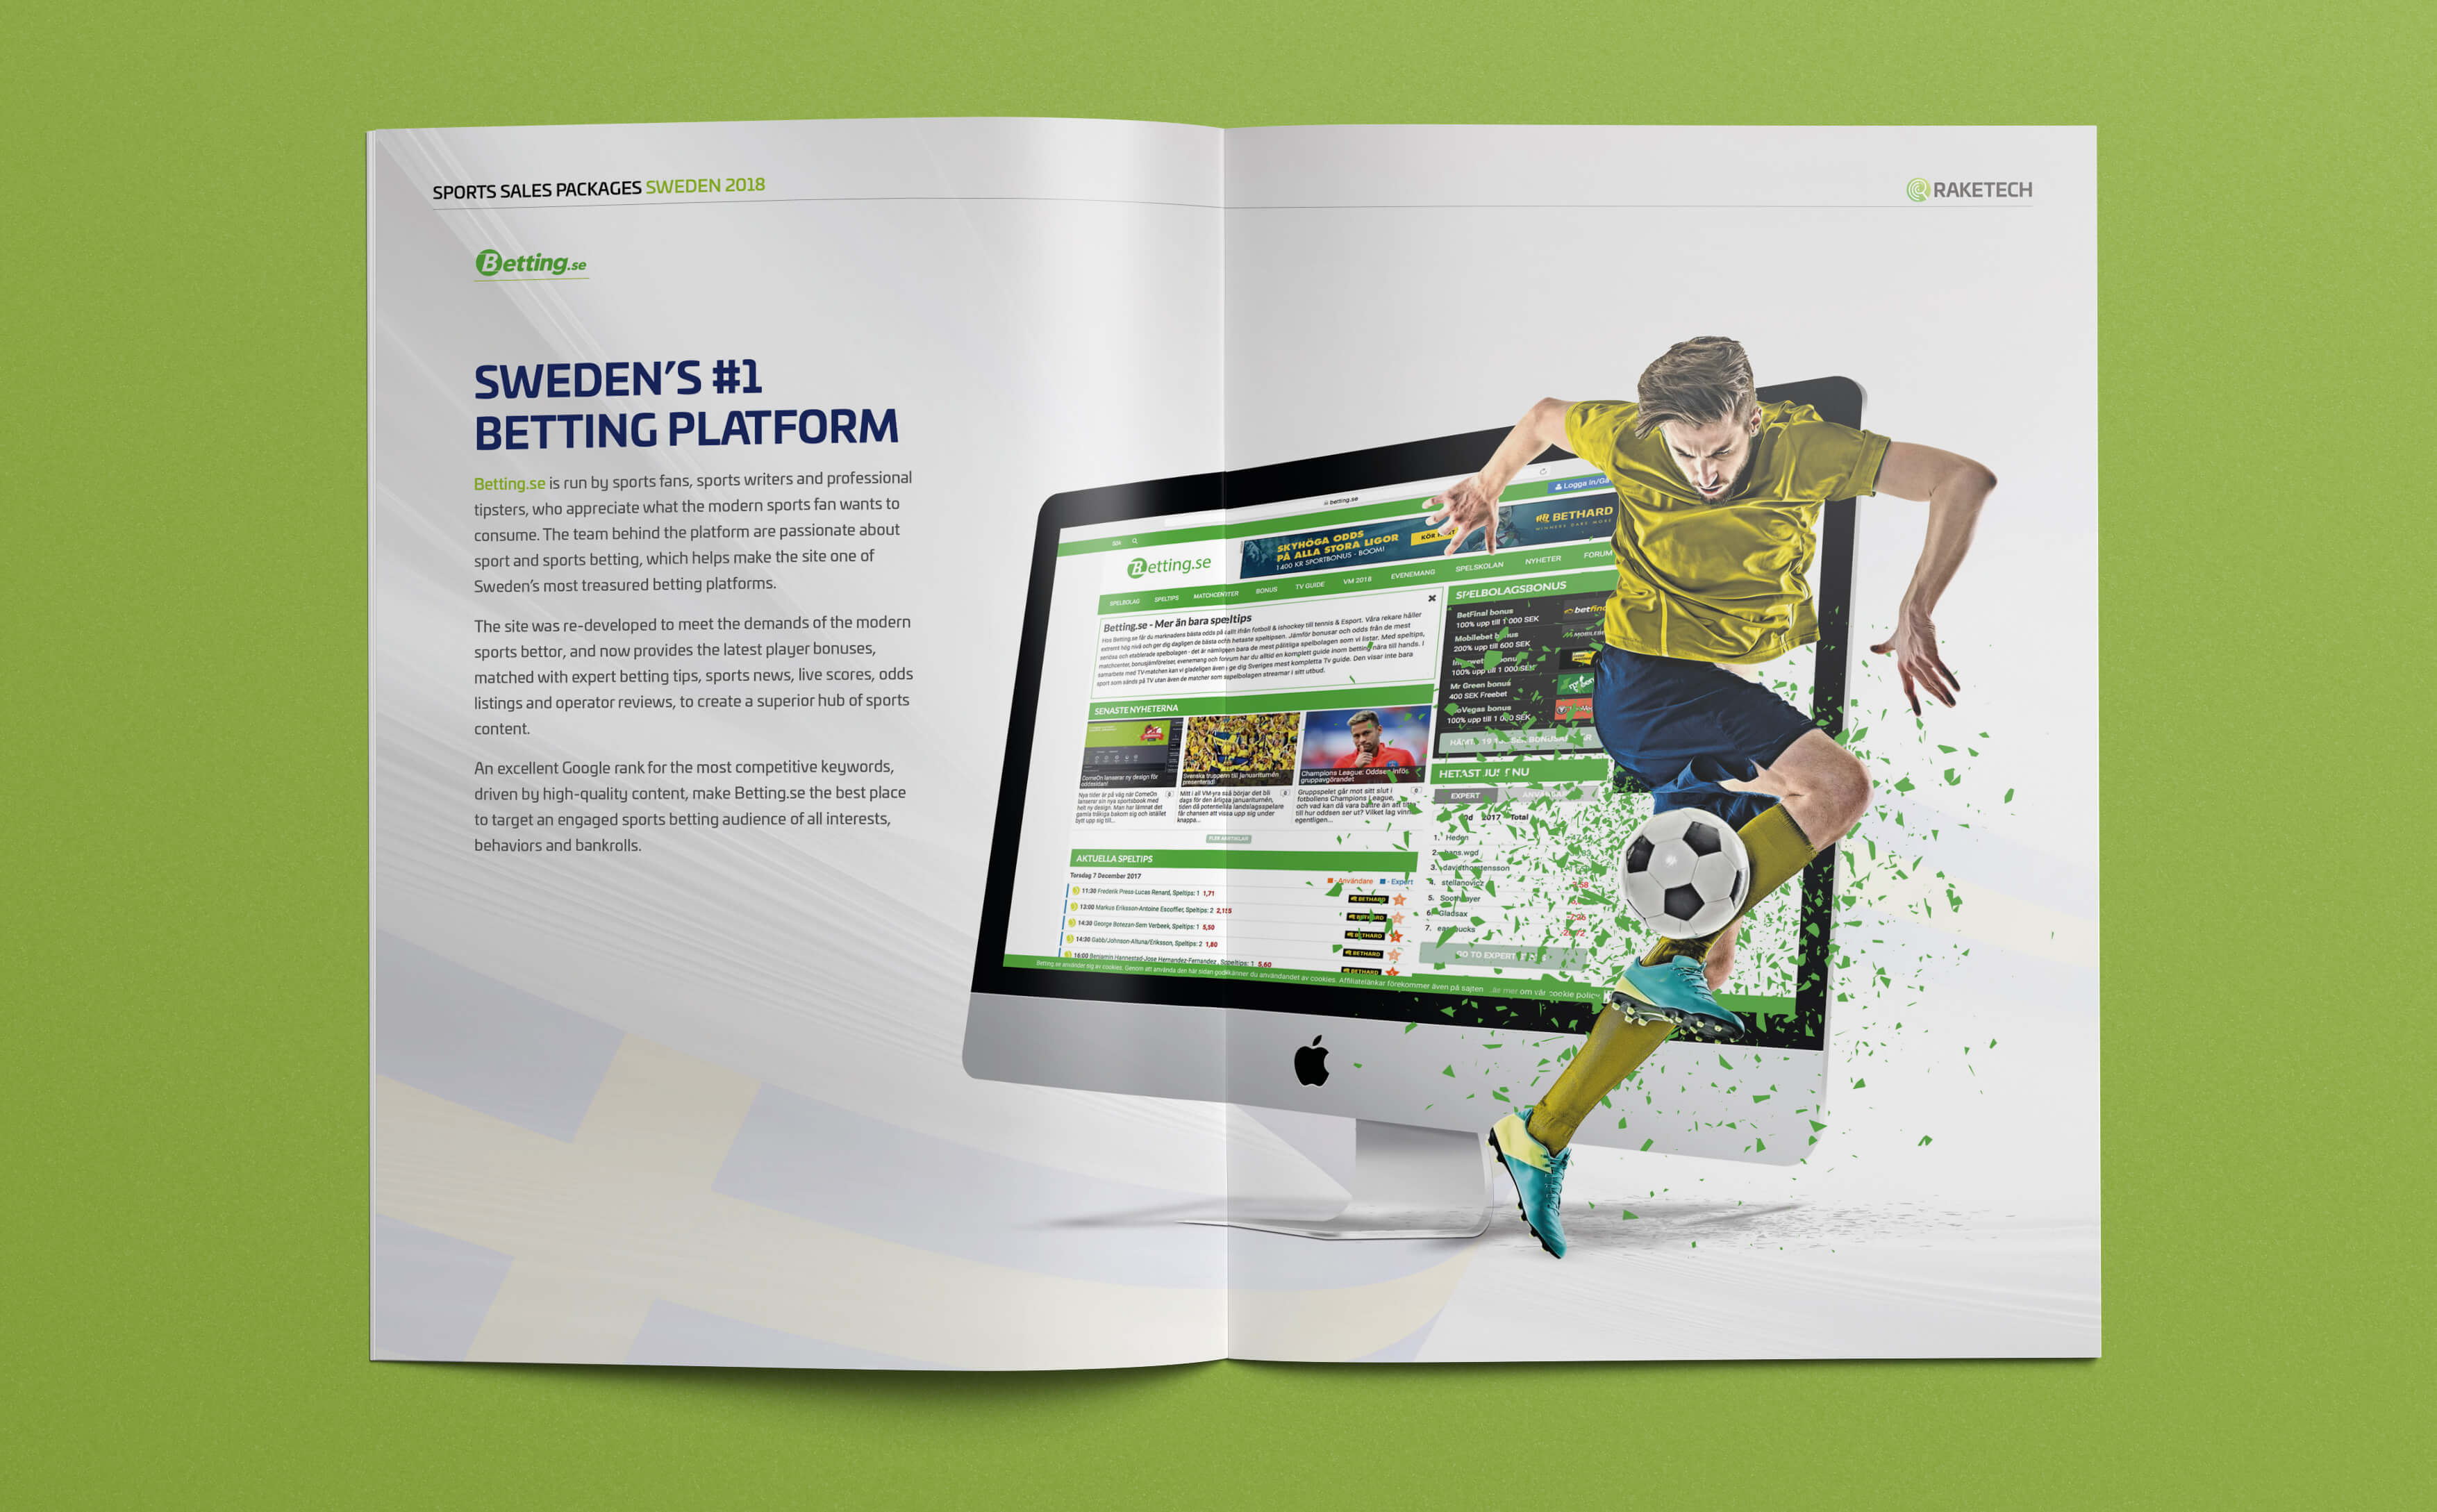 Sports: a selection of sites